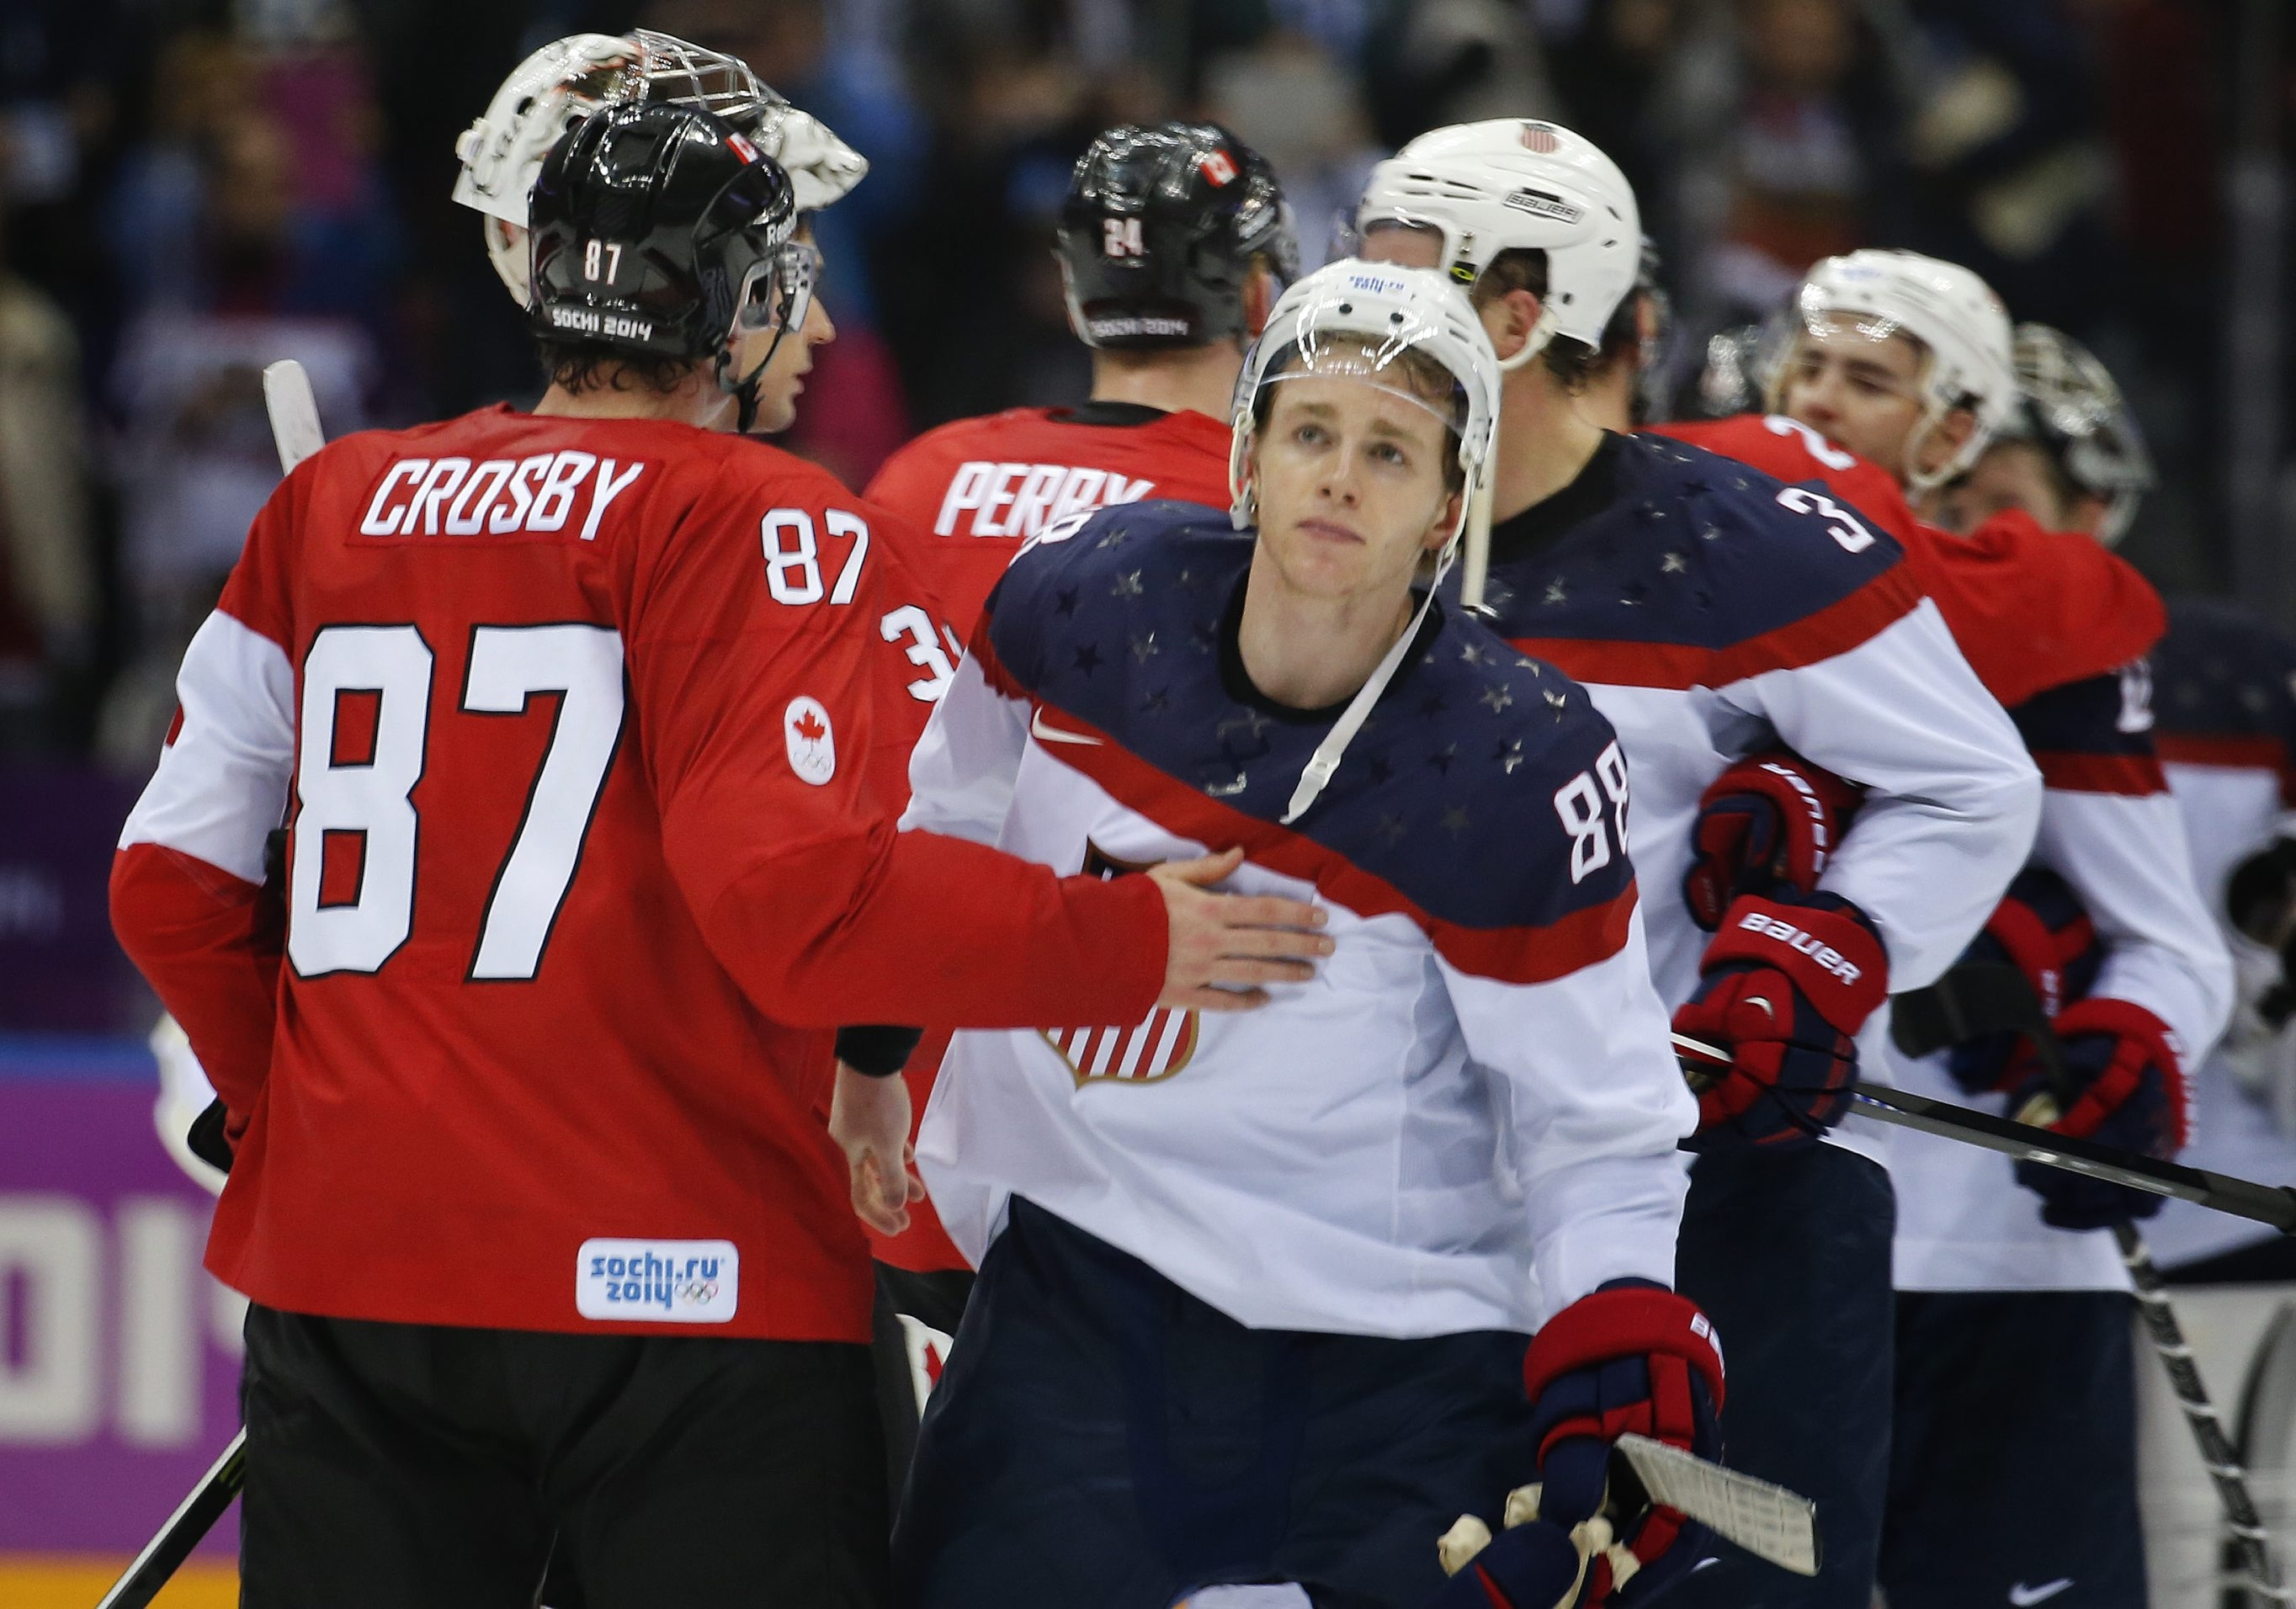 Canada's Sidney Crosby consoles Team USA forward Patrick Kane after Canada won, 1-0, in their men's semifinal hockey game Friday in Sochi, Russia. The U.S. hockey team plays Finland at 10 a.m. today for a bronze medal.